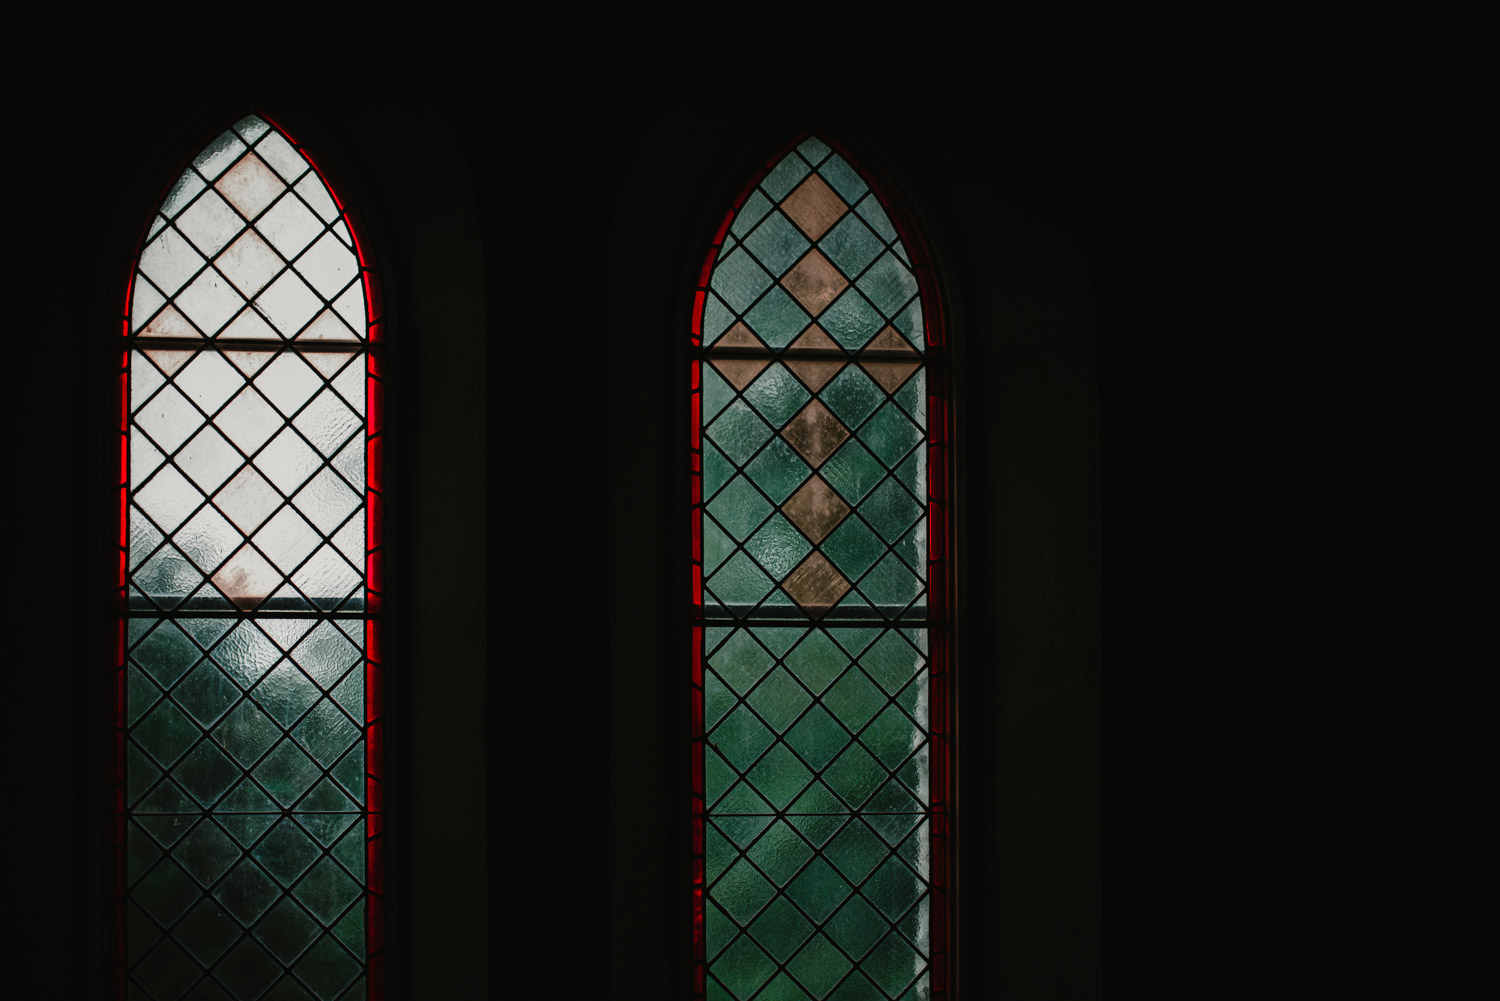 Windows at the church shine light into a darkened room